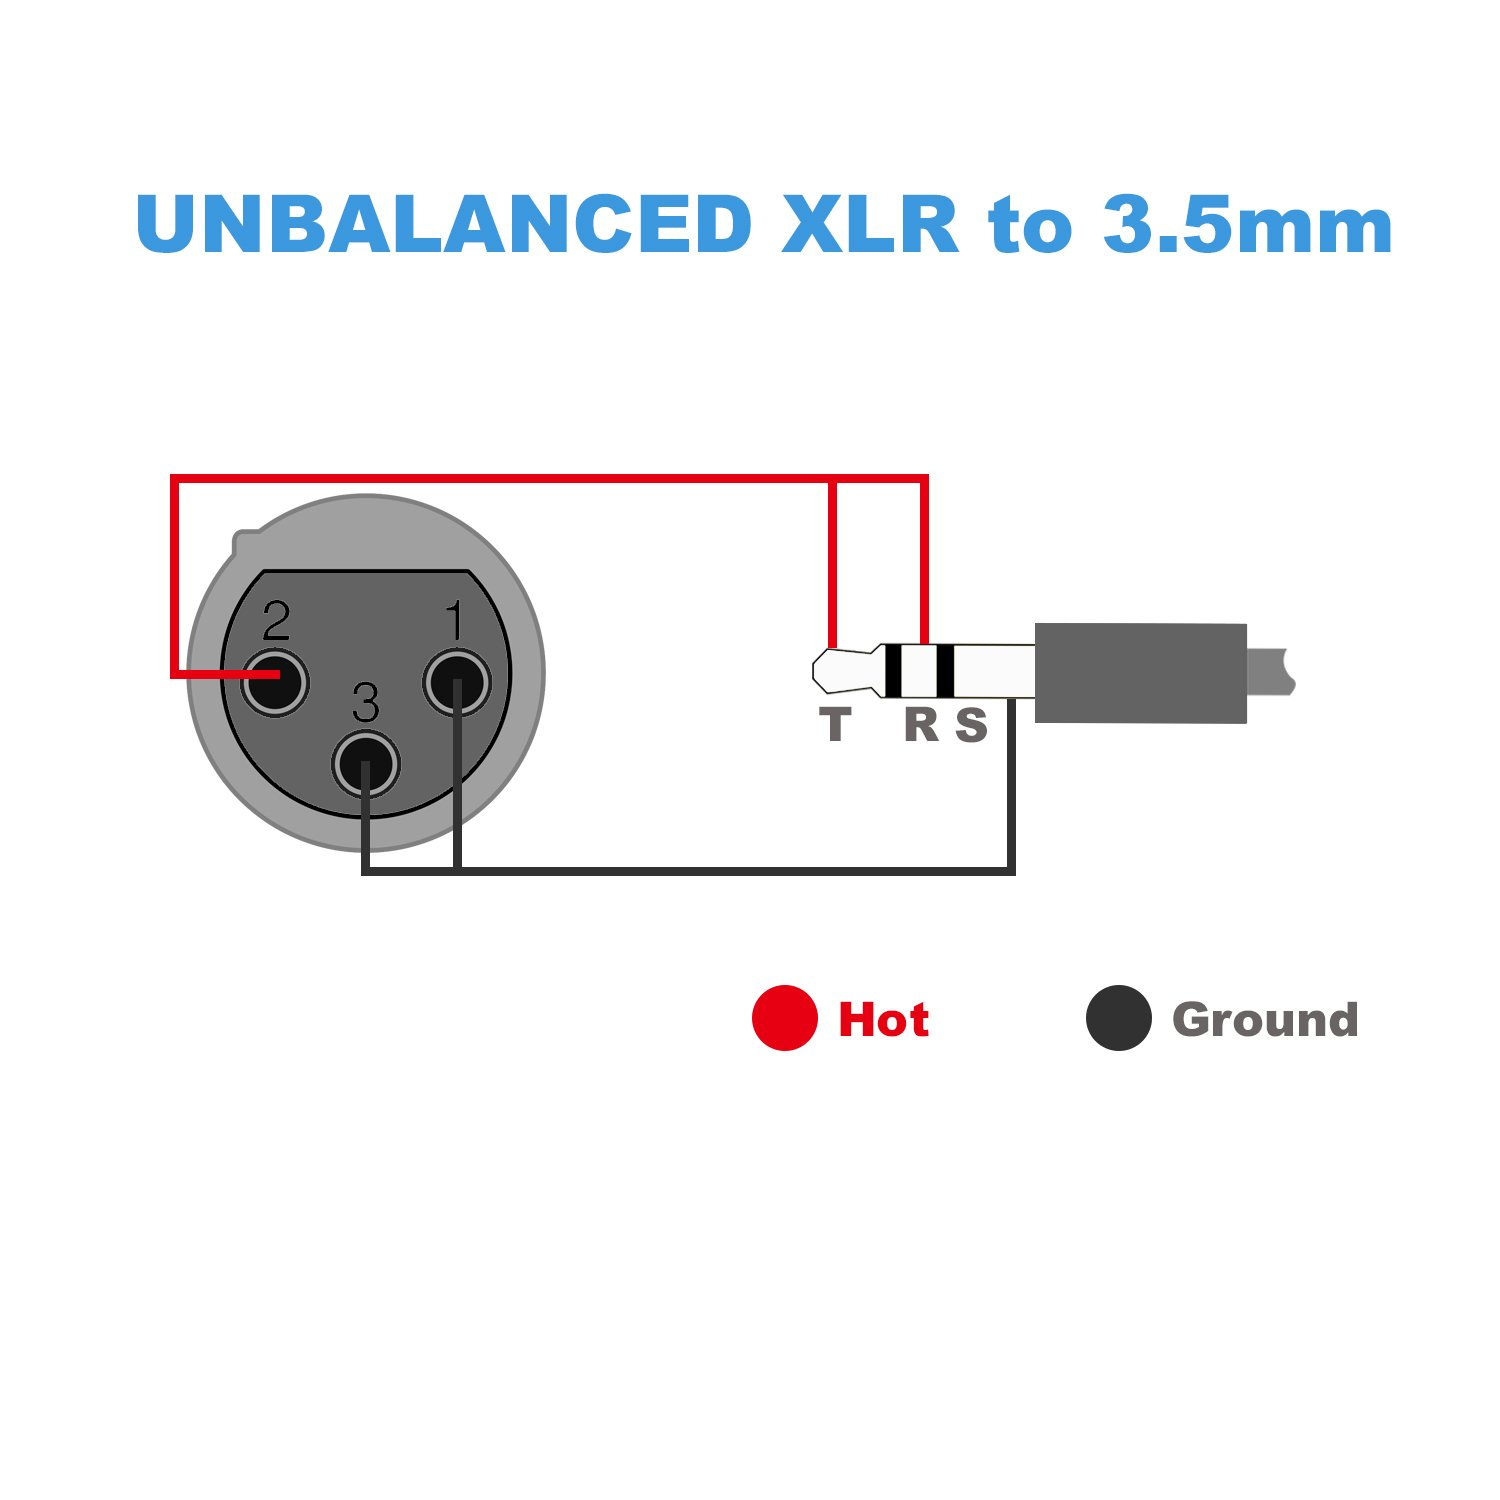 Xlr To 3 5mm 4 Point Diagram Electrical Wiring Diagrams Further For 1 Stereo Jack Amazon Com Jolgoo Unbalanced 8 Inch Trs Audio Plug Male Balanced Schematic